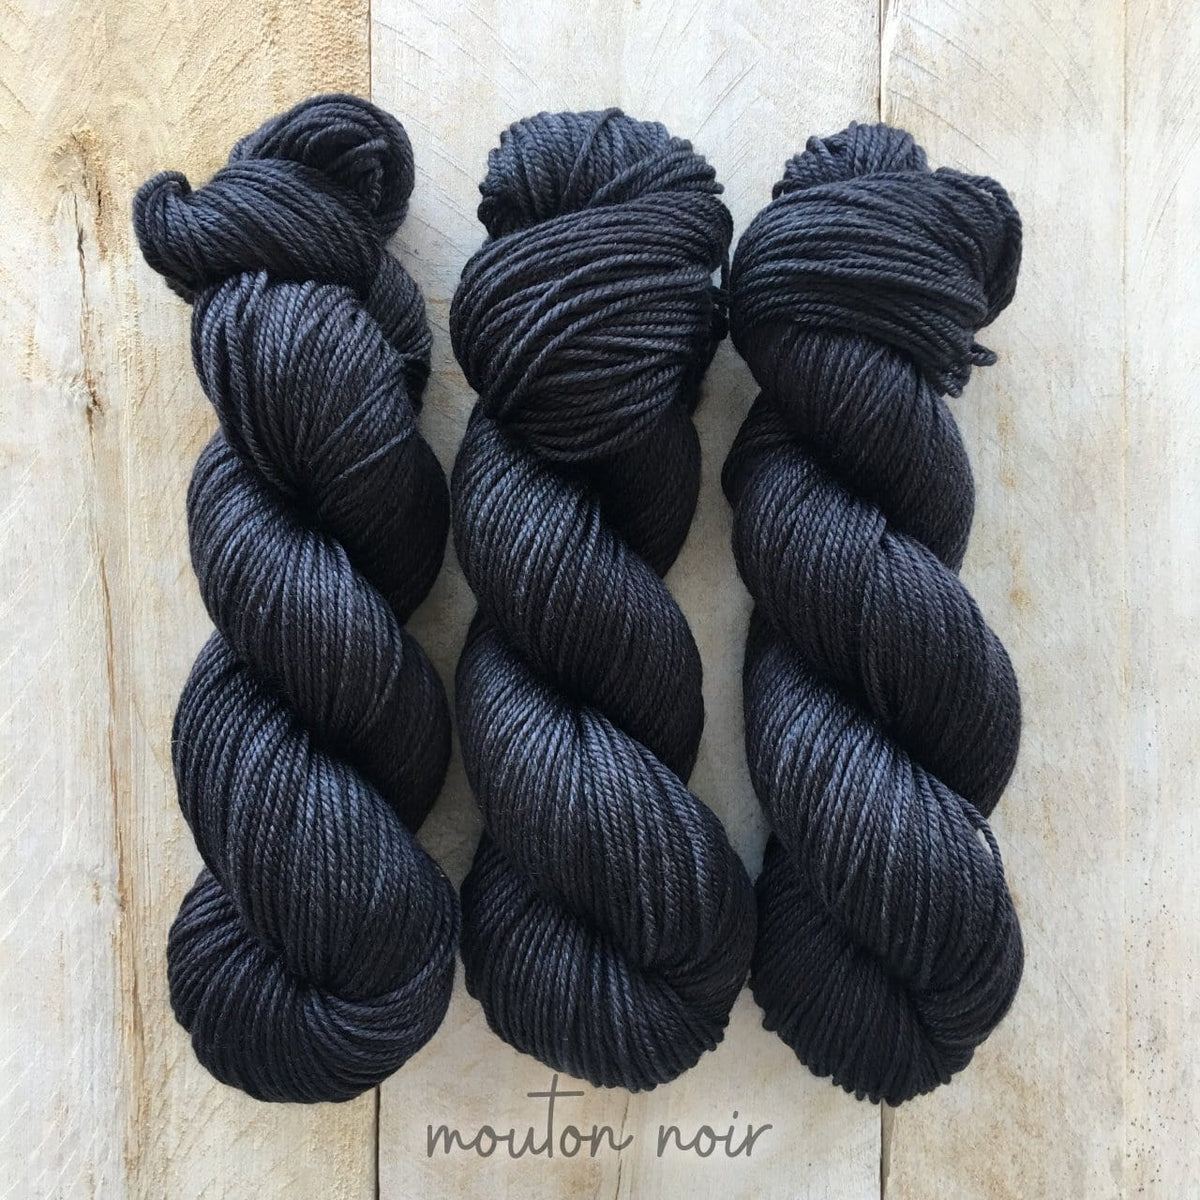 MOUTON NOIR by Louise Robert Design | DK PURE hand-dyed semi-solid yarn